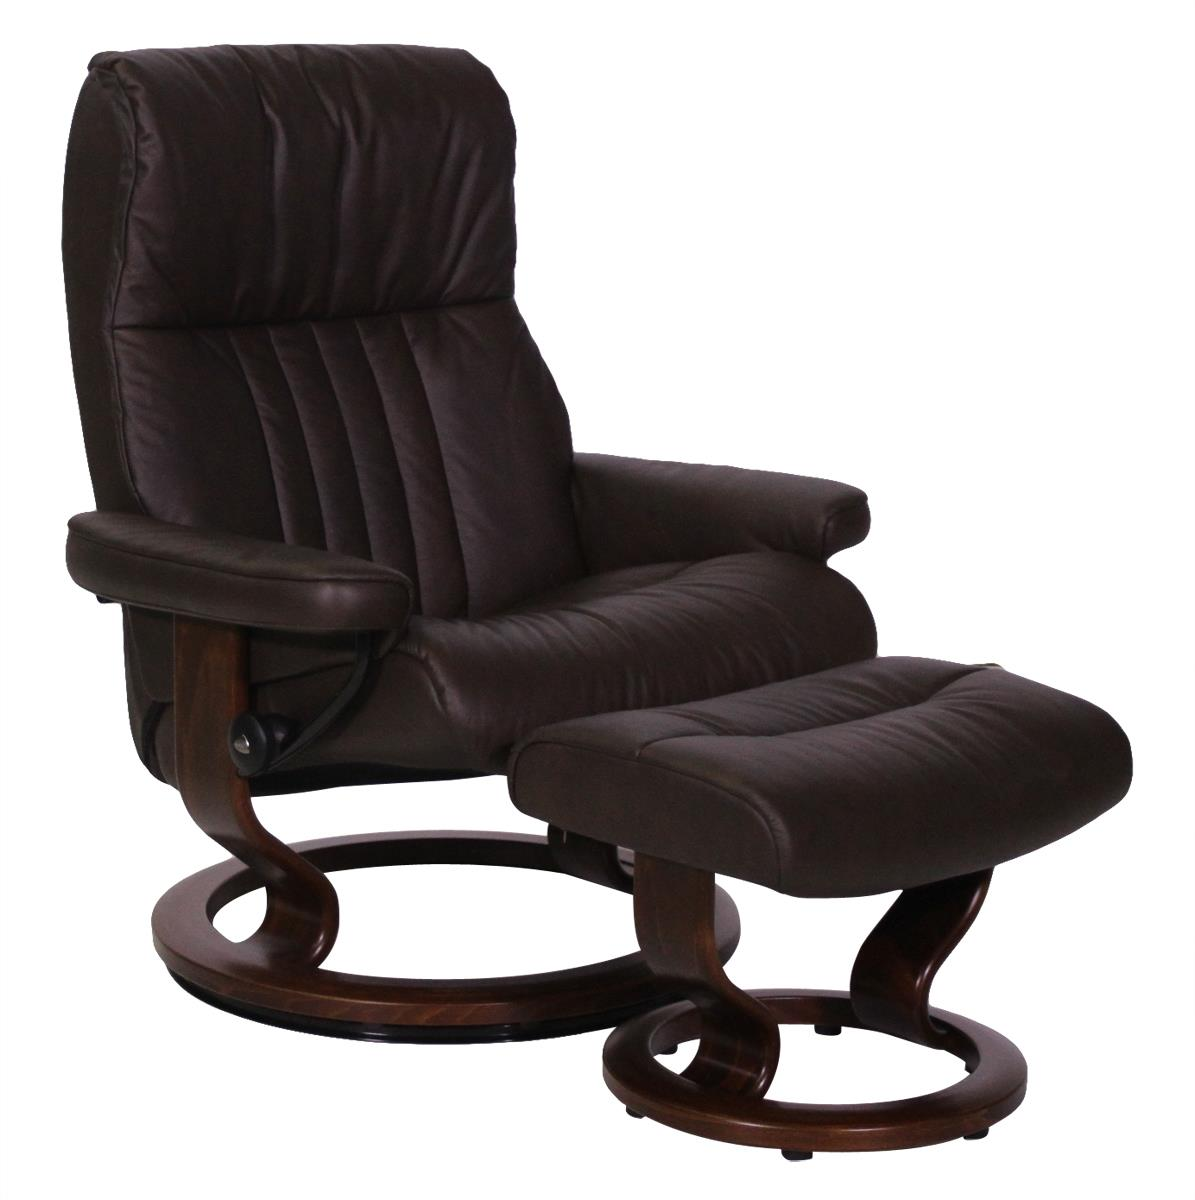 Large Stressless Chair and Ottoman